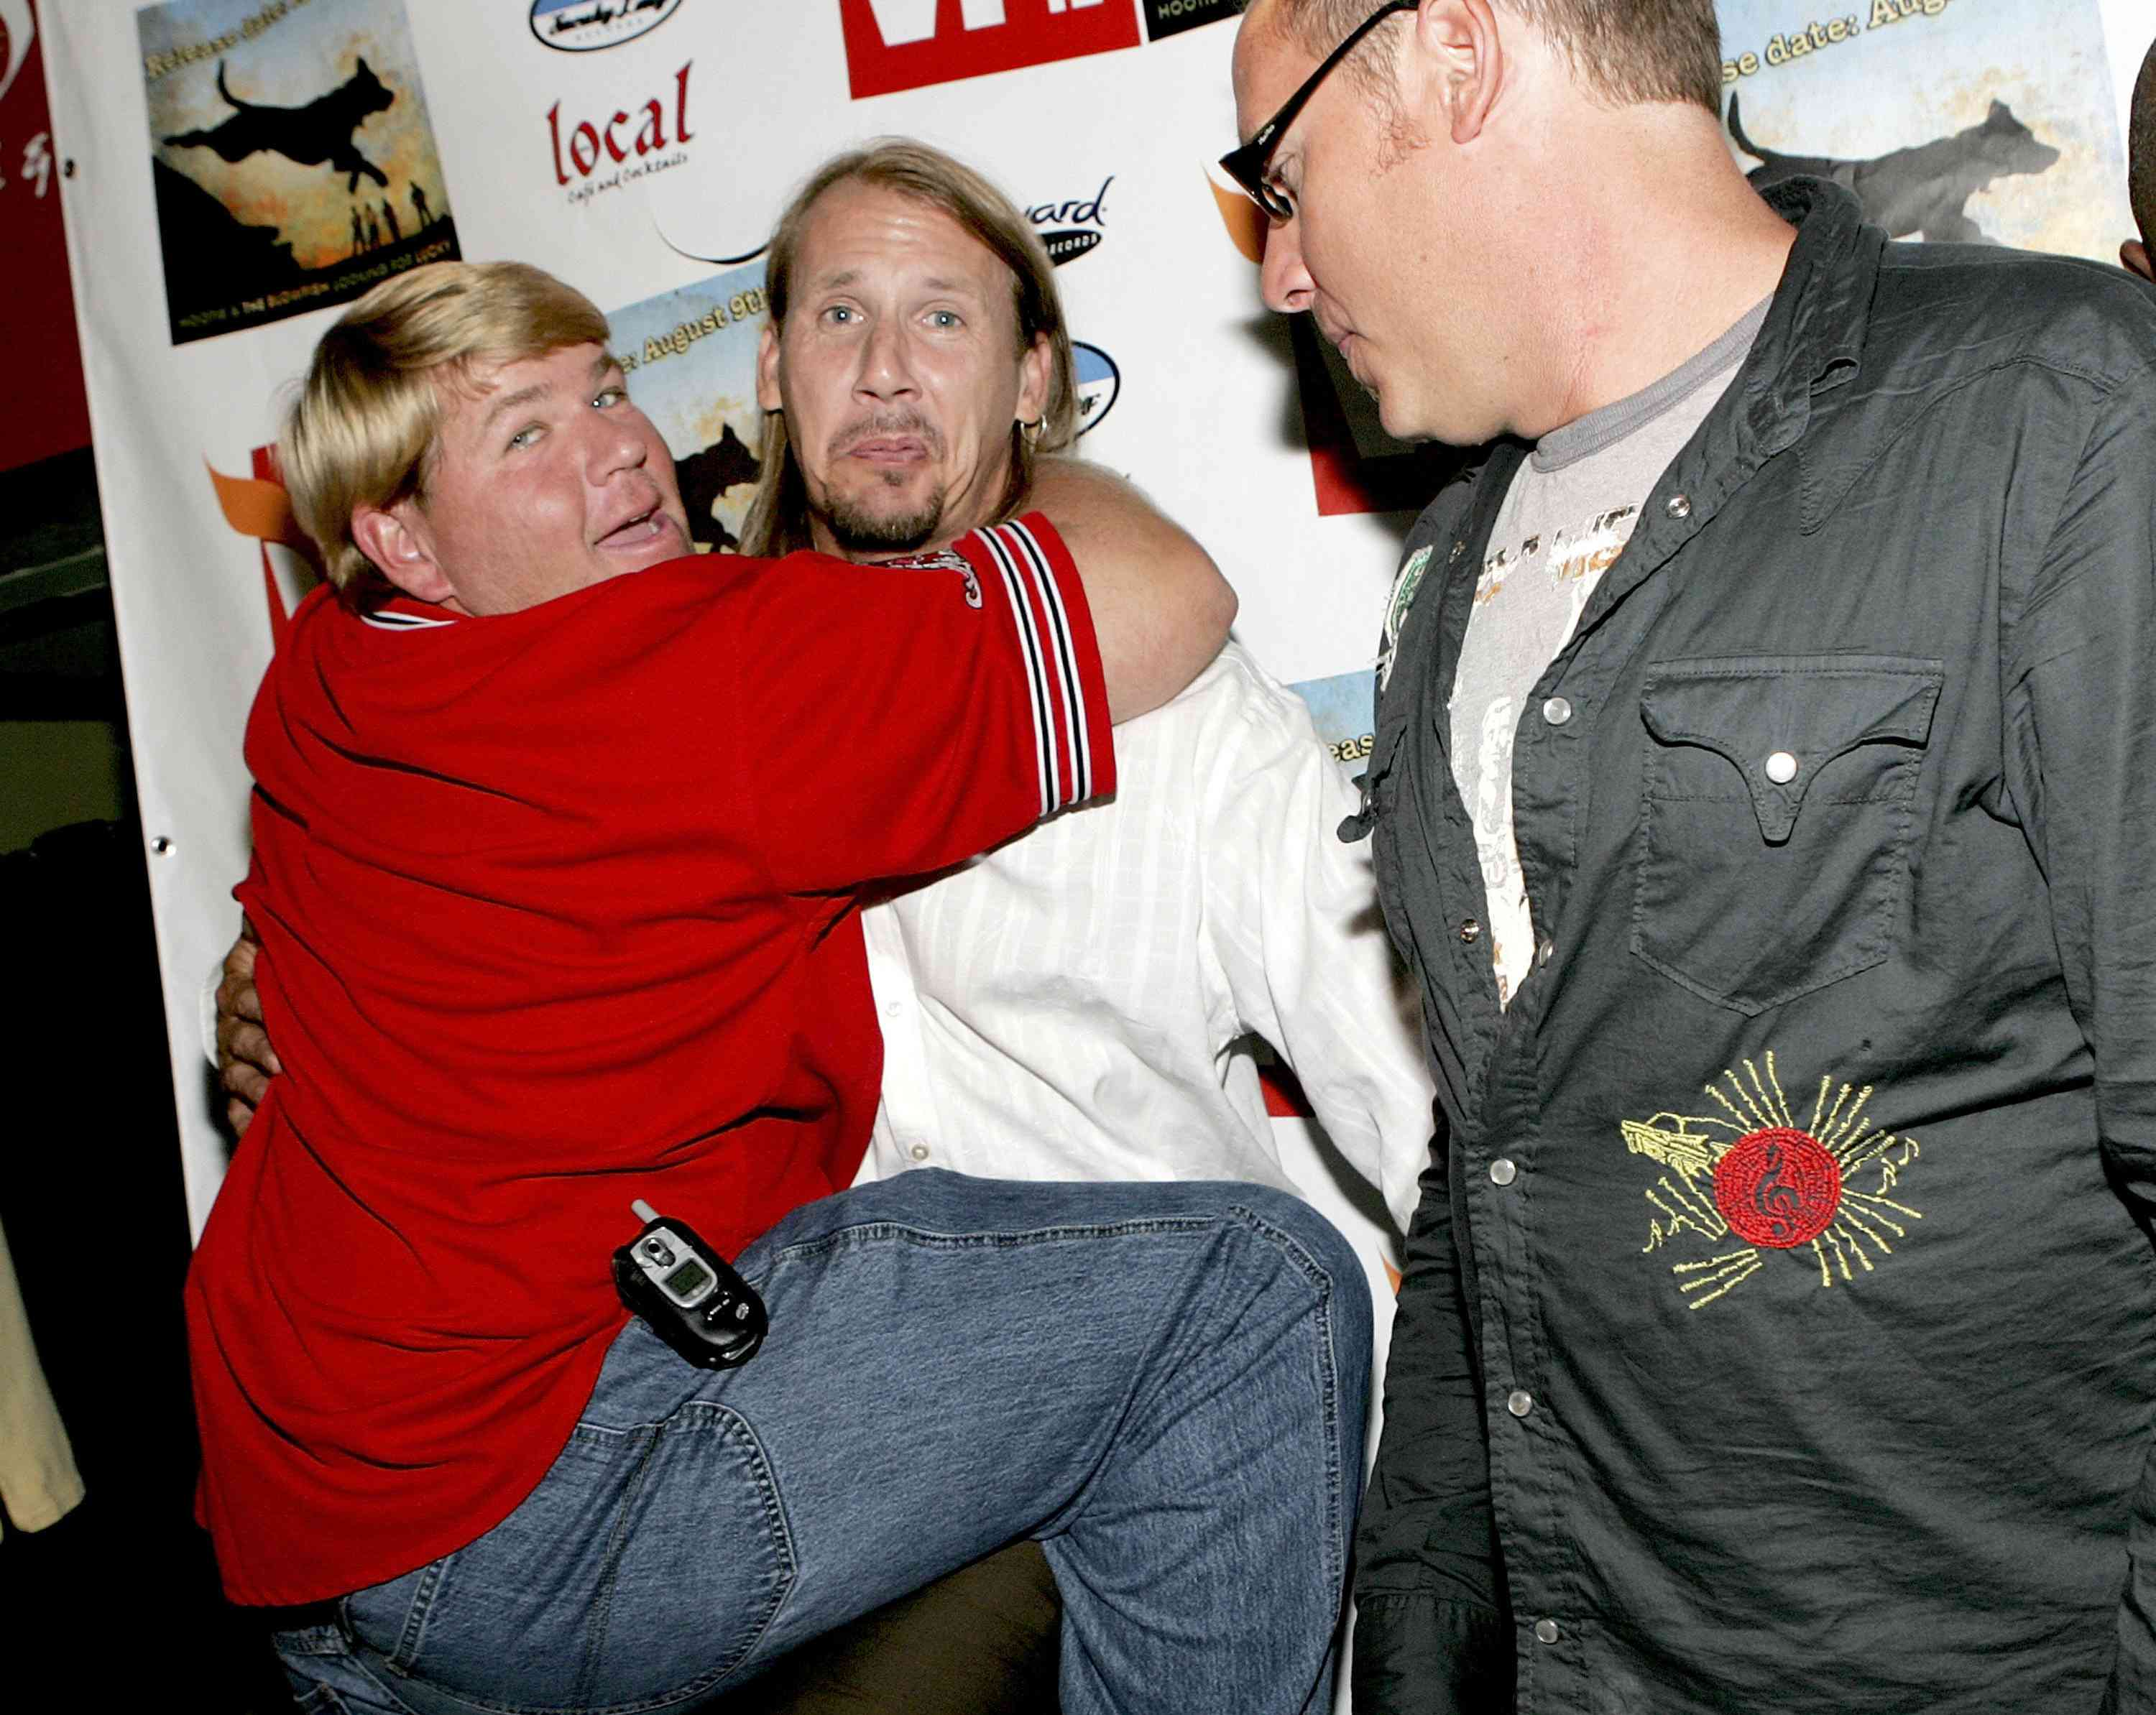 """Golfer John Daly jokes with Hootie and the Blowfish band members Jim """"Soni"""" Sonefeld (C) and Dean Felber (R) as they attend a listening party for their new CD """"Looking for Lucky"""" at Local 1 August 8, 2005"""